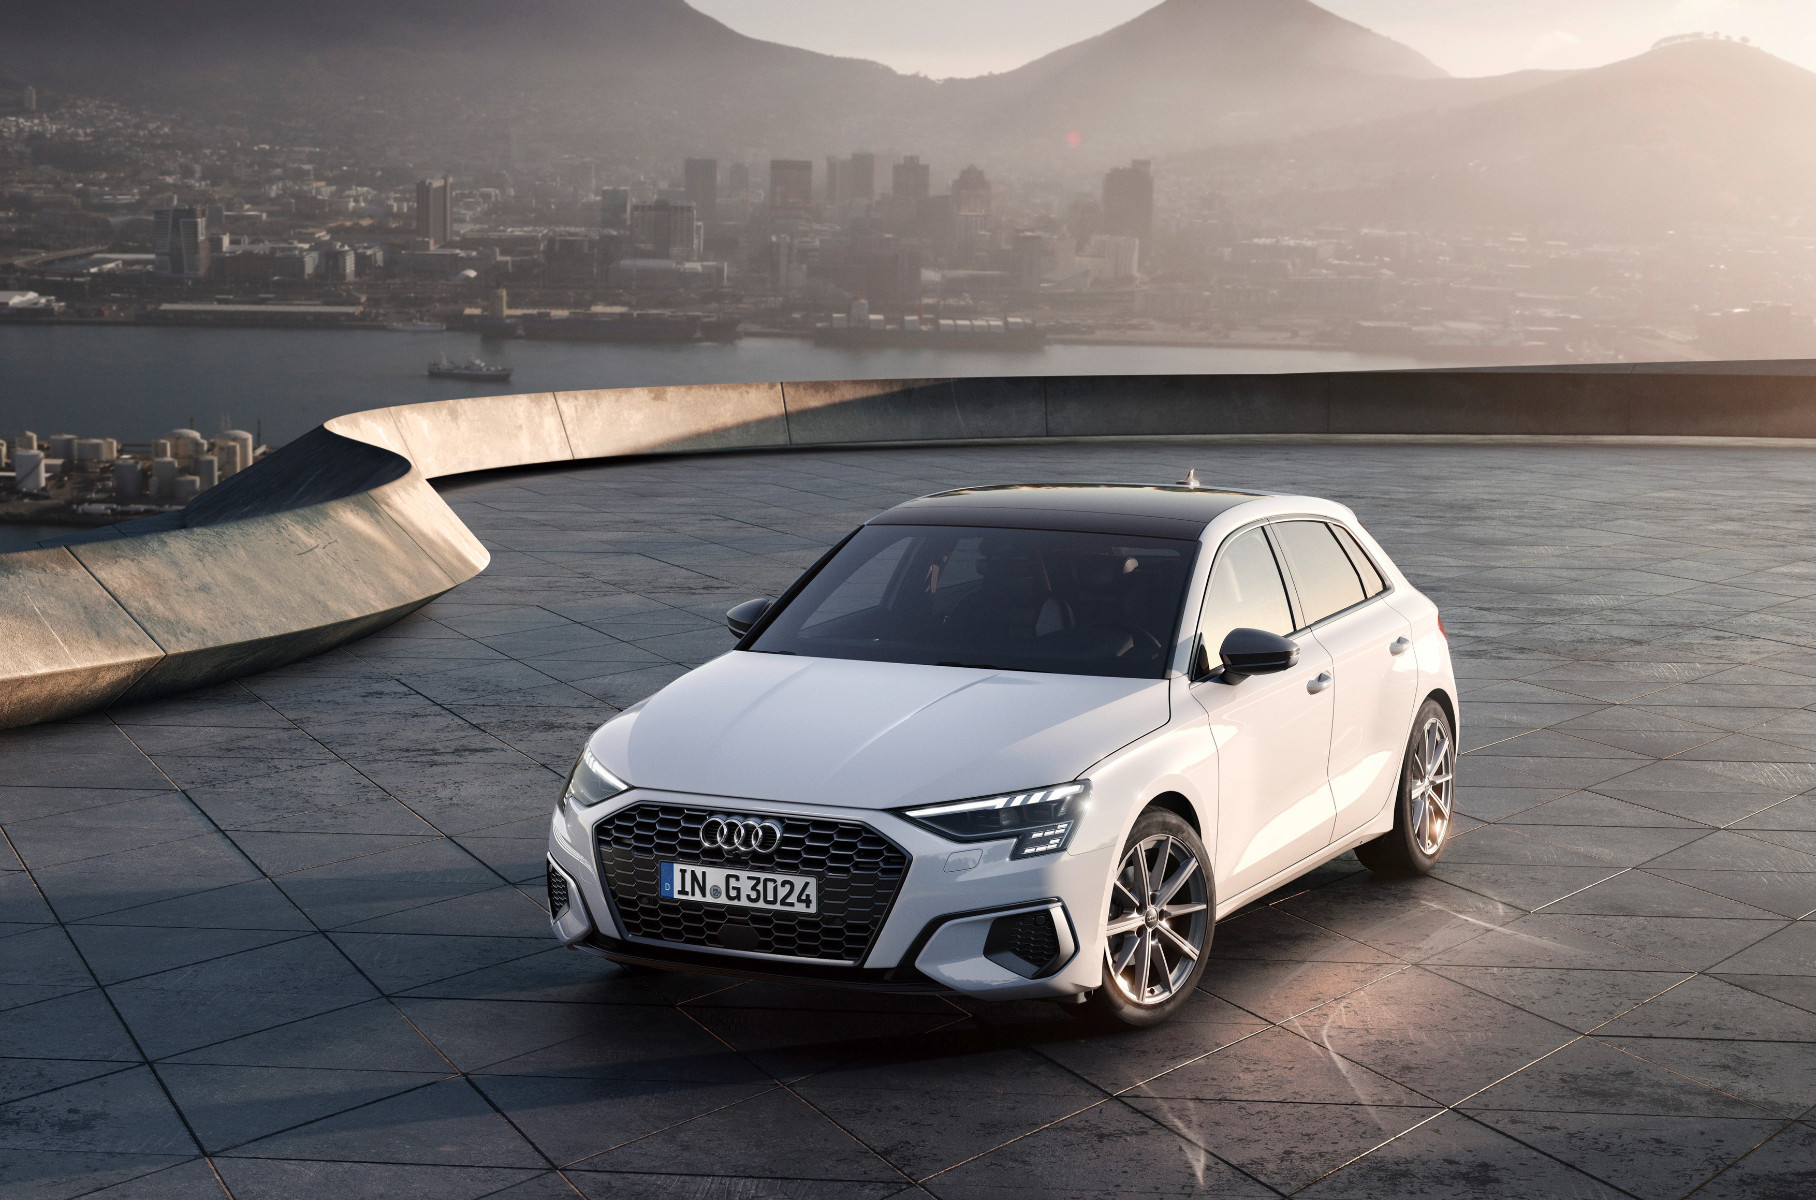 """Audi has launched a new """"30 g-tron"""" spec of its A3 Sportback. The car runs on condensed natural gas and will soon go on sale starting from €30,700."""